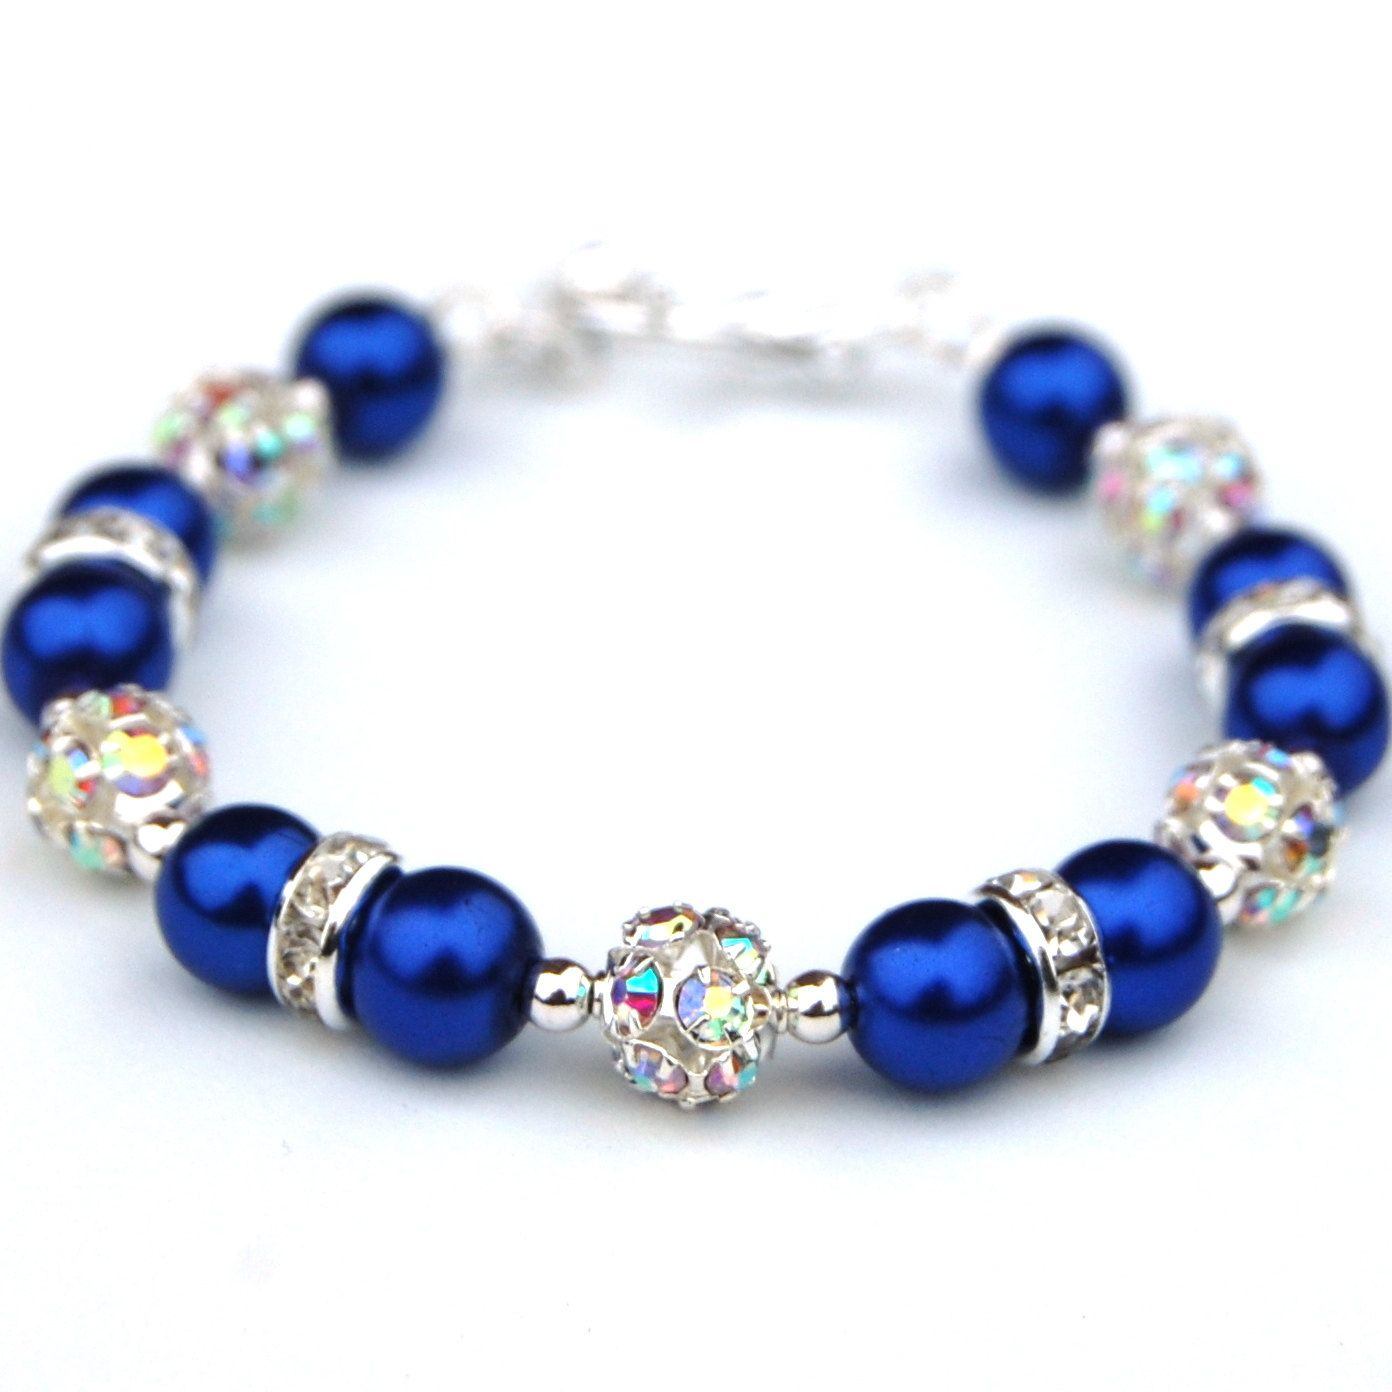 Royal Blue Bracelet Wedding Jewelry Bridesmaid Gifts Pearl Rhinestone Something